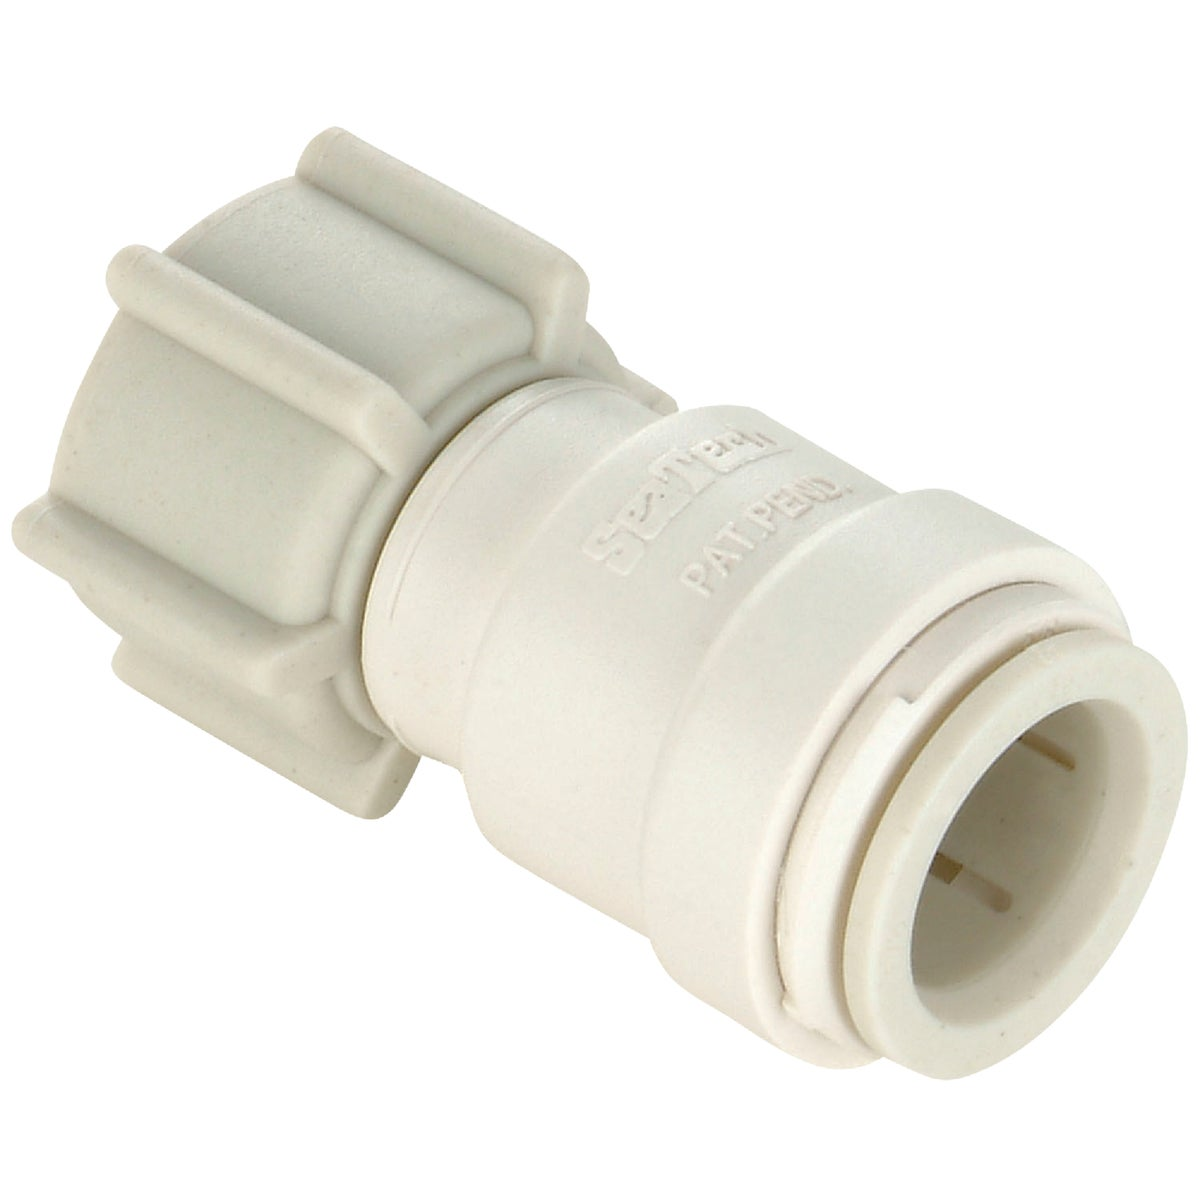 1/2CTSX3/4FPT ADAPTER - P-617 by Watts Pex